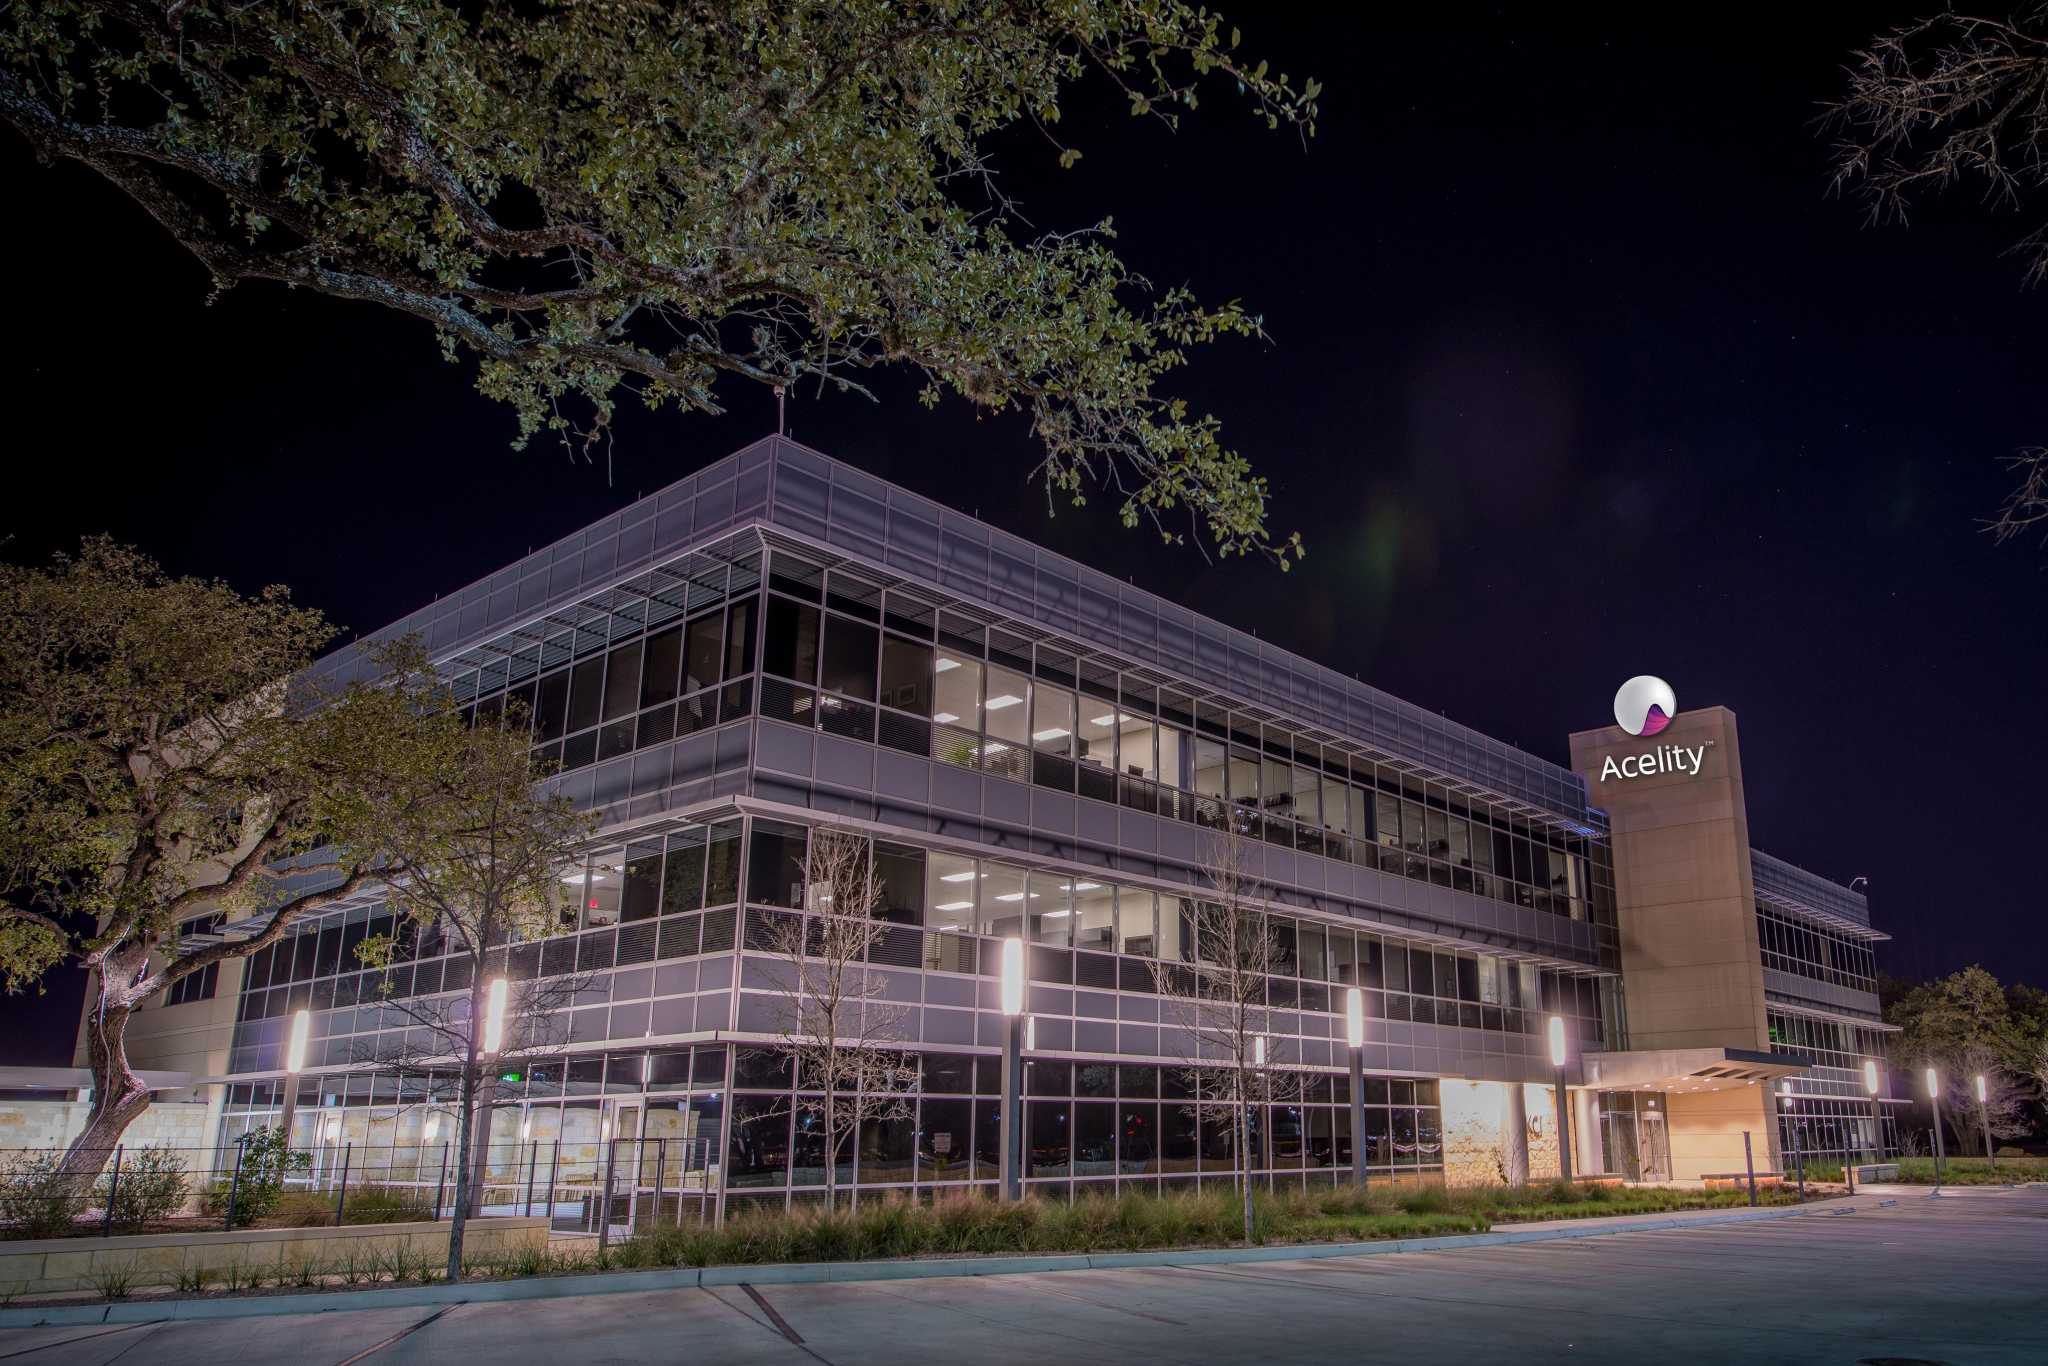 3M completes $6.7B deal for San Antonio's Acelity